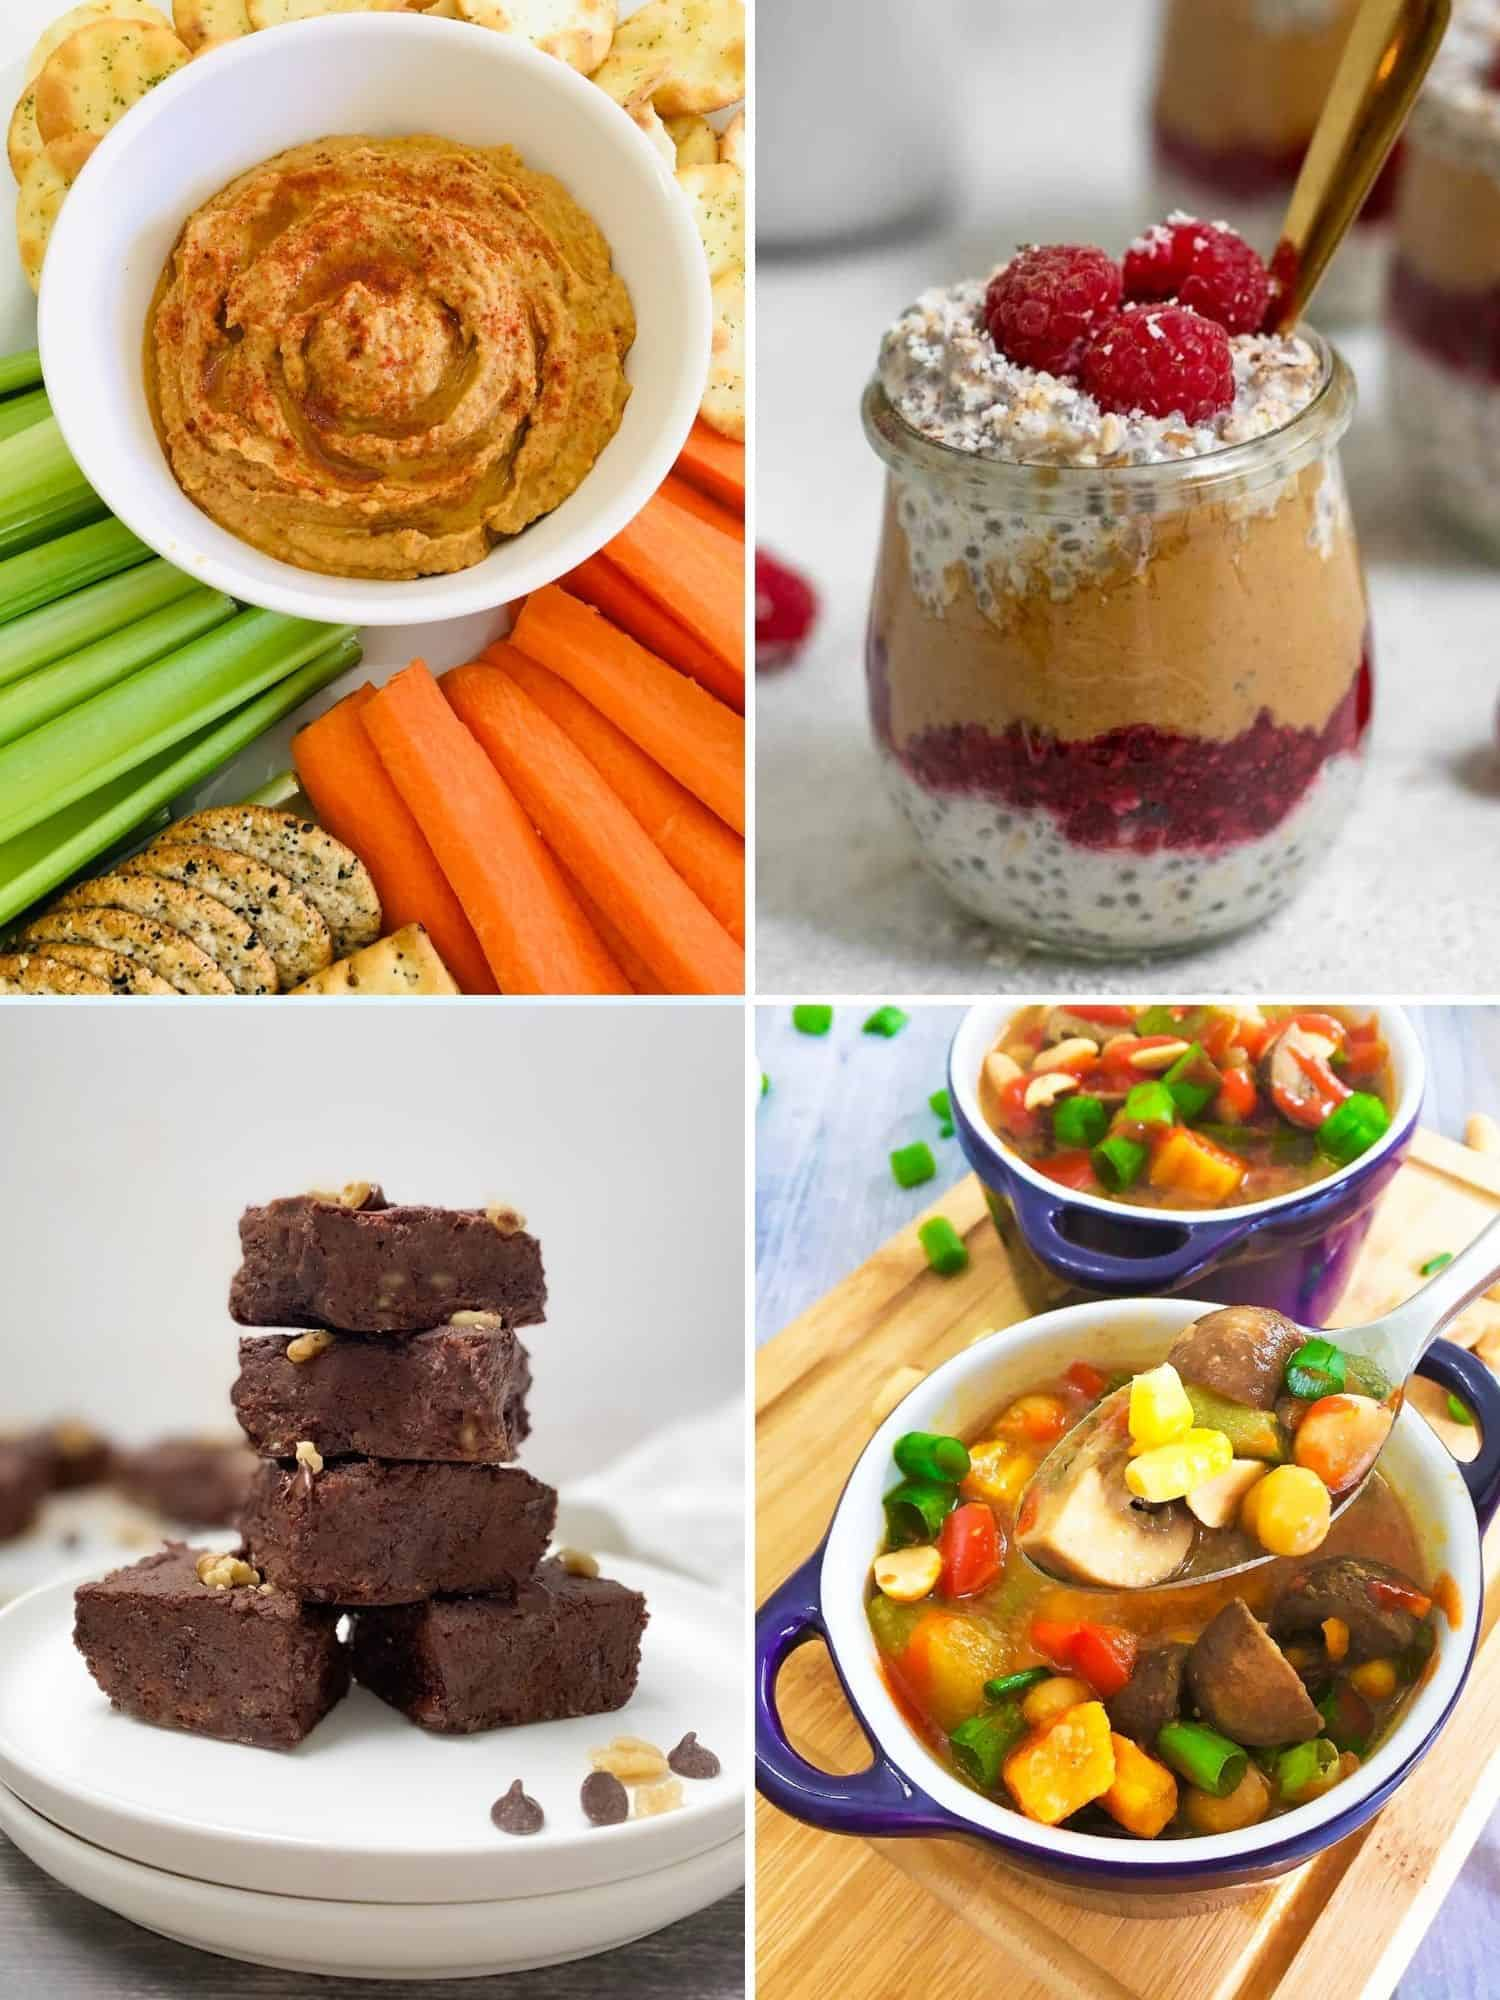 Peanut butter hummus, oats, brownies and soup in a collage grid.